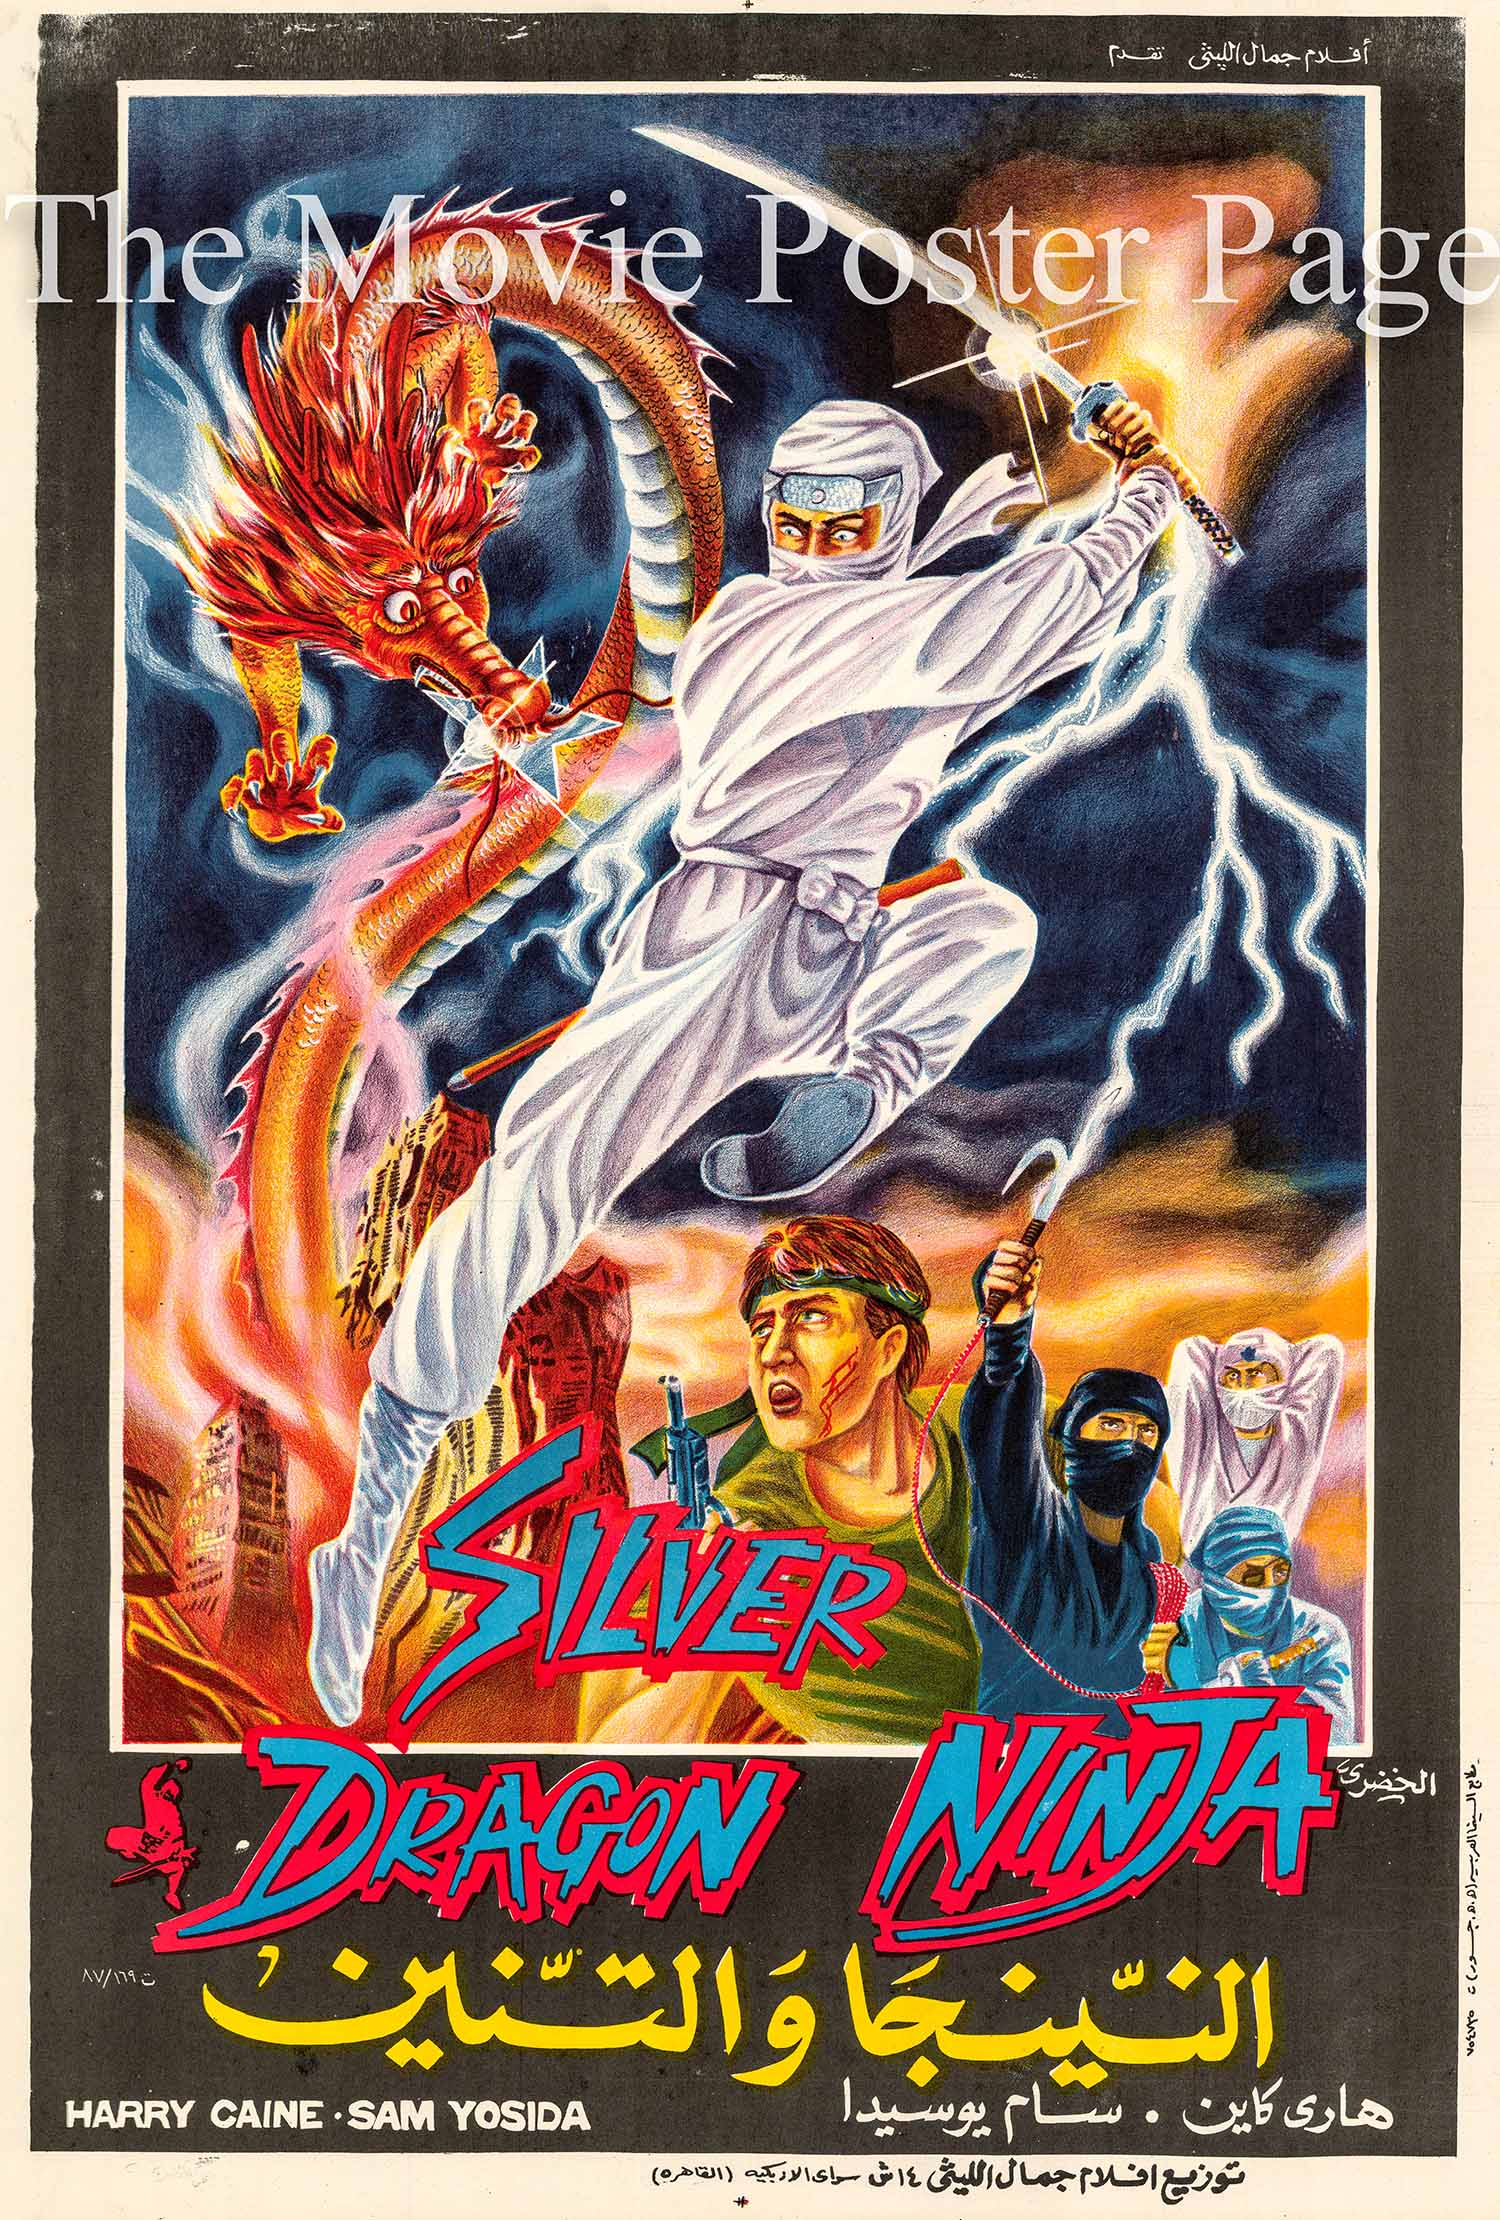 Pictured is an Egyptian promotional poster for a 1987 Egyptian rerelease of the 1986 Don King film Silver Dragon Ninja, starring Harry Caine.